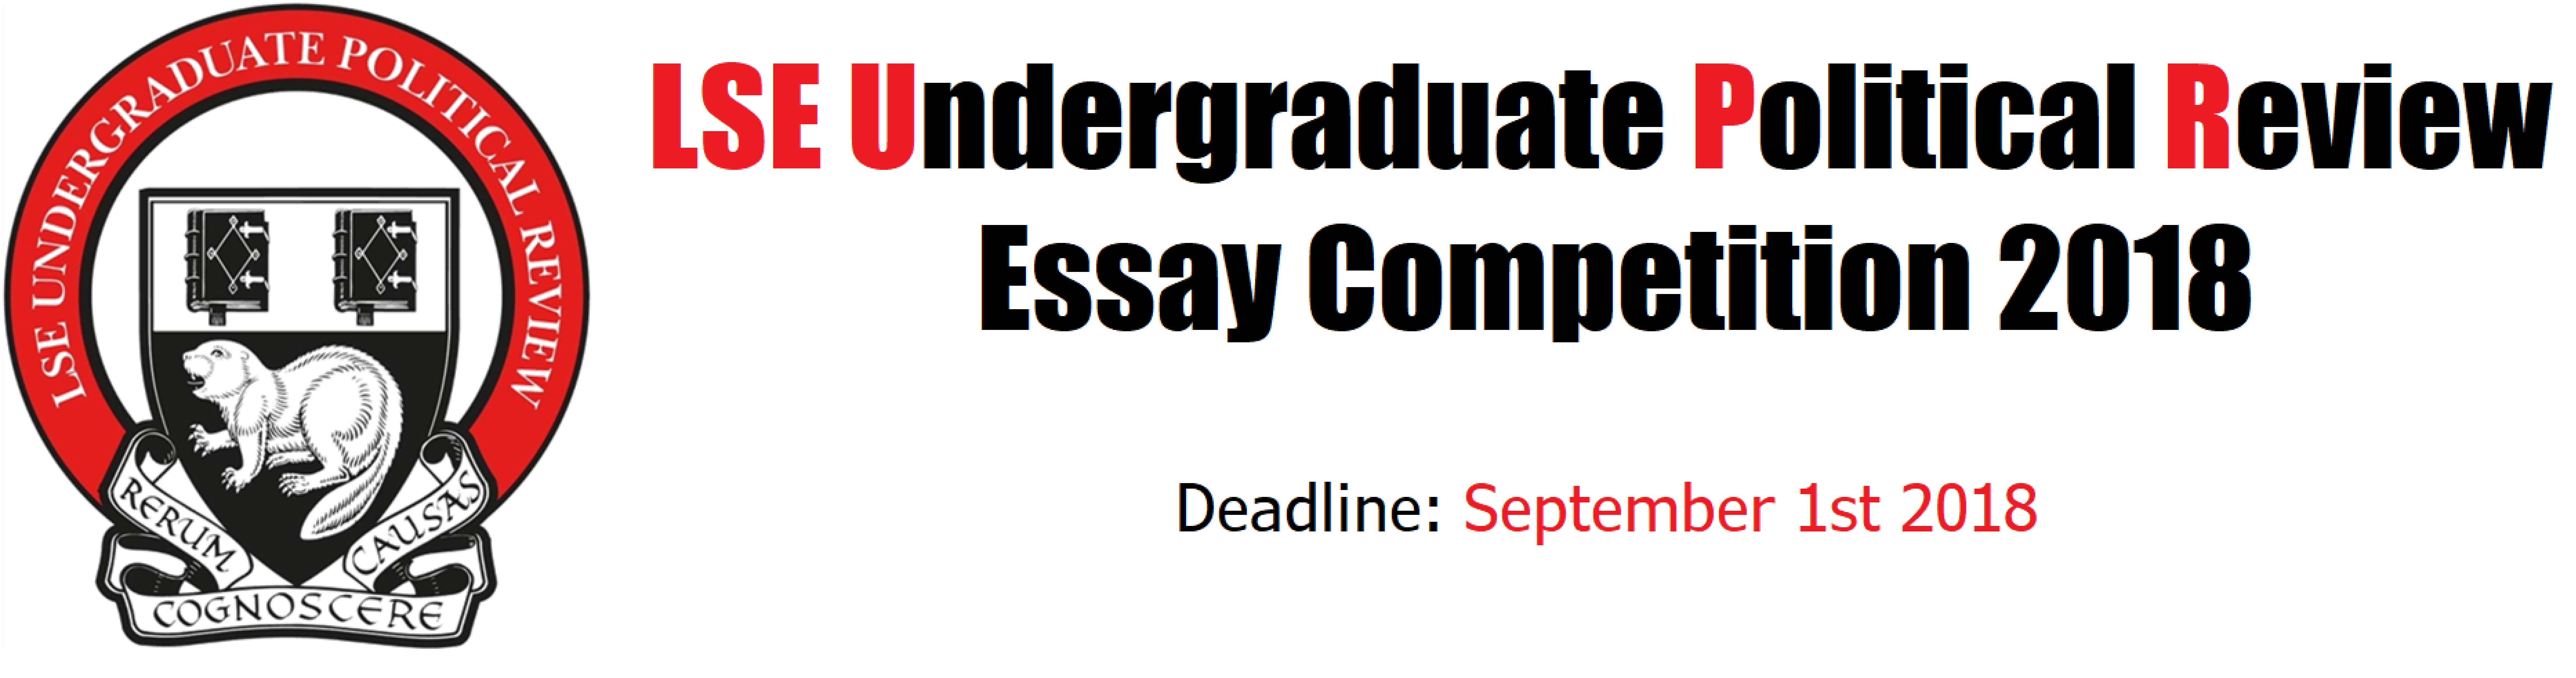 Essay Competition   Lse Undergraduate Political Review The Lse Upr Is Pleased To Announce Its First Essay Competition In Which We  Hope To Encourage Incoming And Outgoing Year  And  Students To Tackle   Reports To Buy also Need Help With Writing  Proposal Essay Ideas